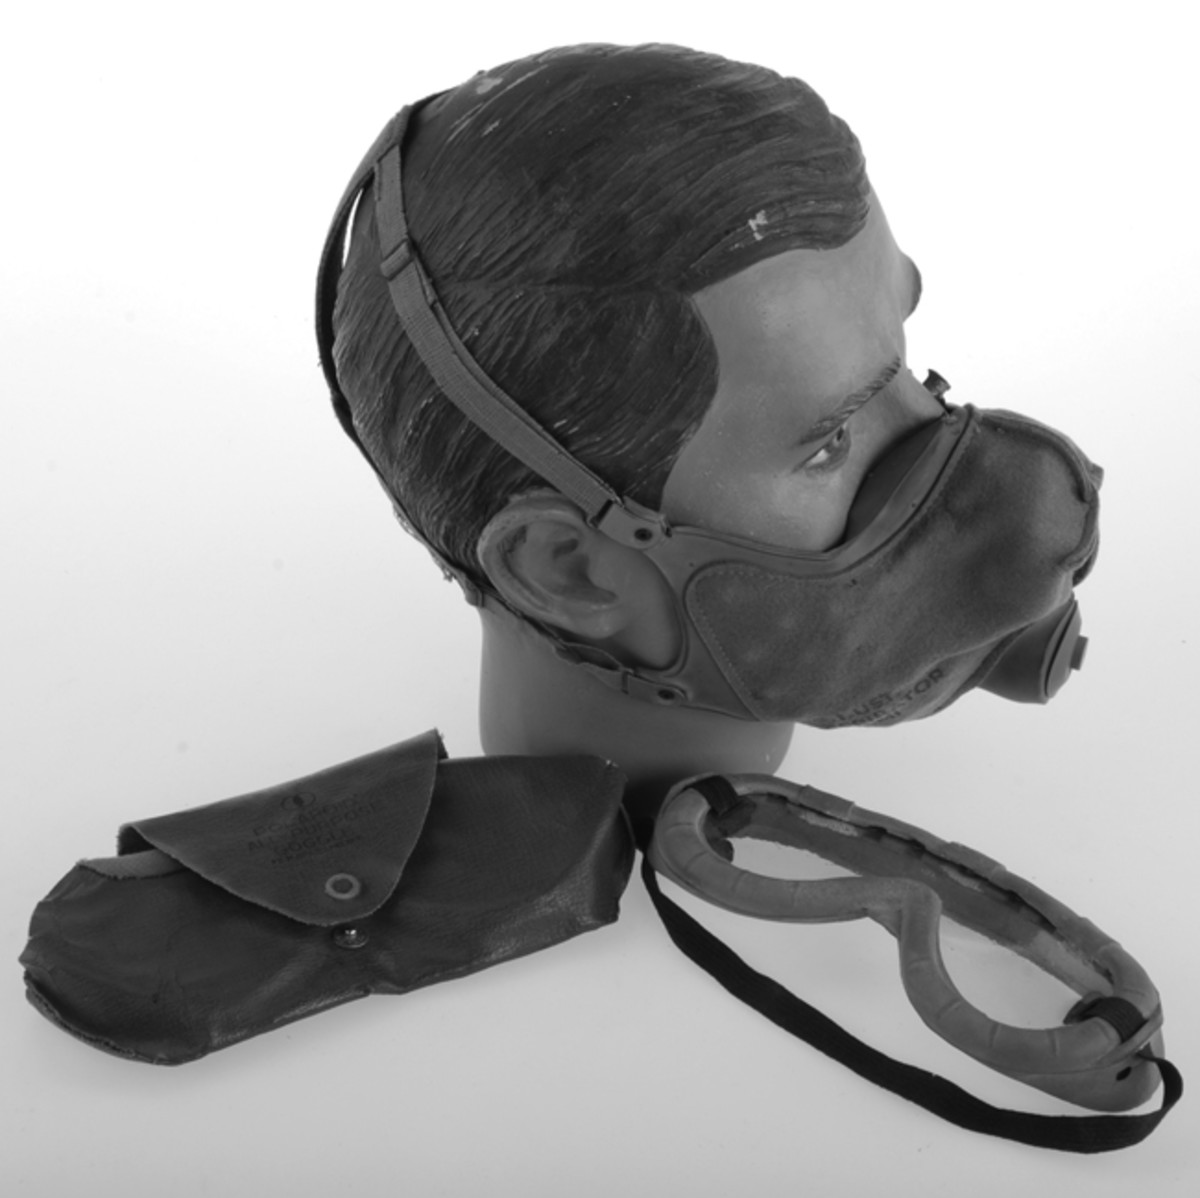 The M1 Dust Respirator was standardized in April 1941. The wearer manipulated the four-point, adjustable harness for a snug fit. www.AdvanceGuardMilitaria.com